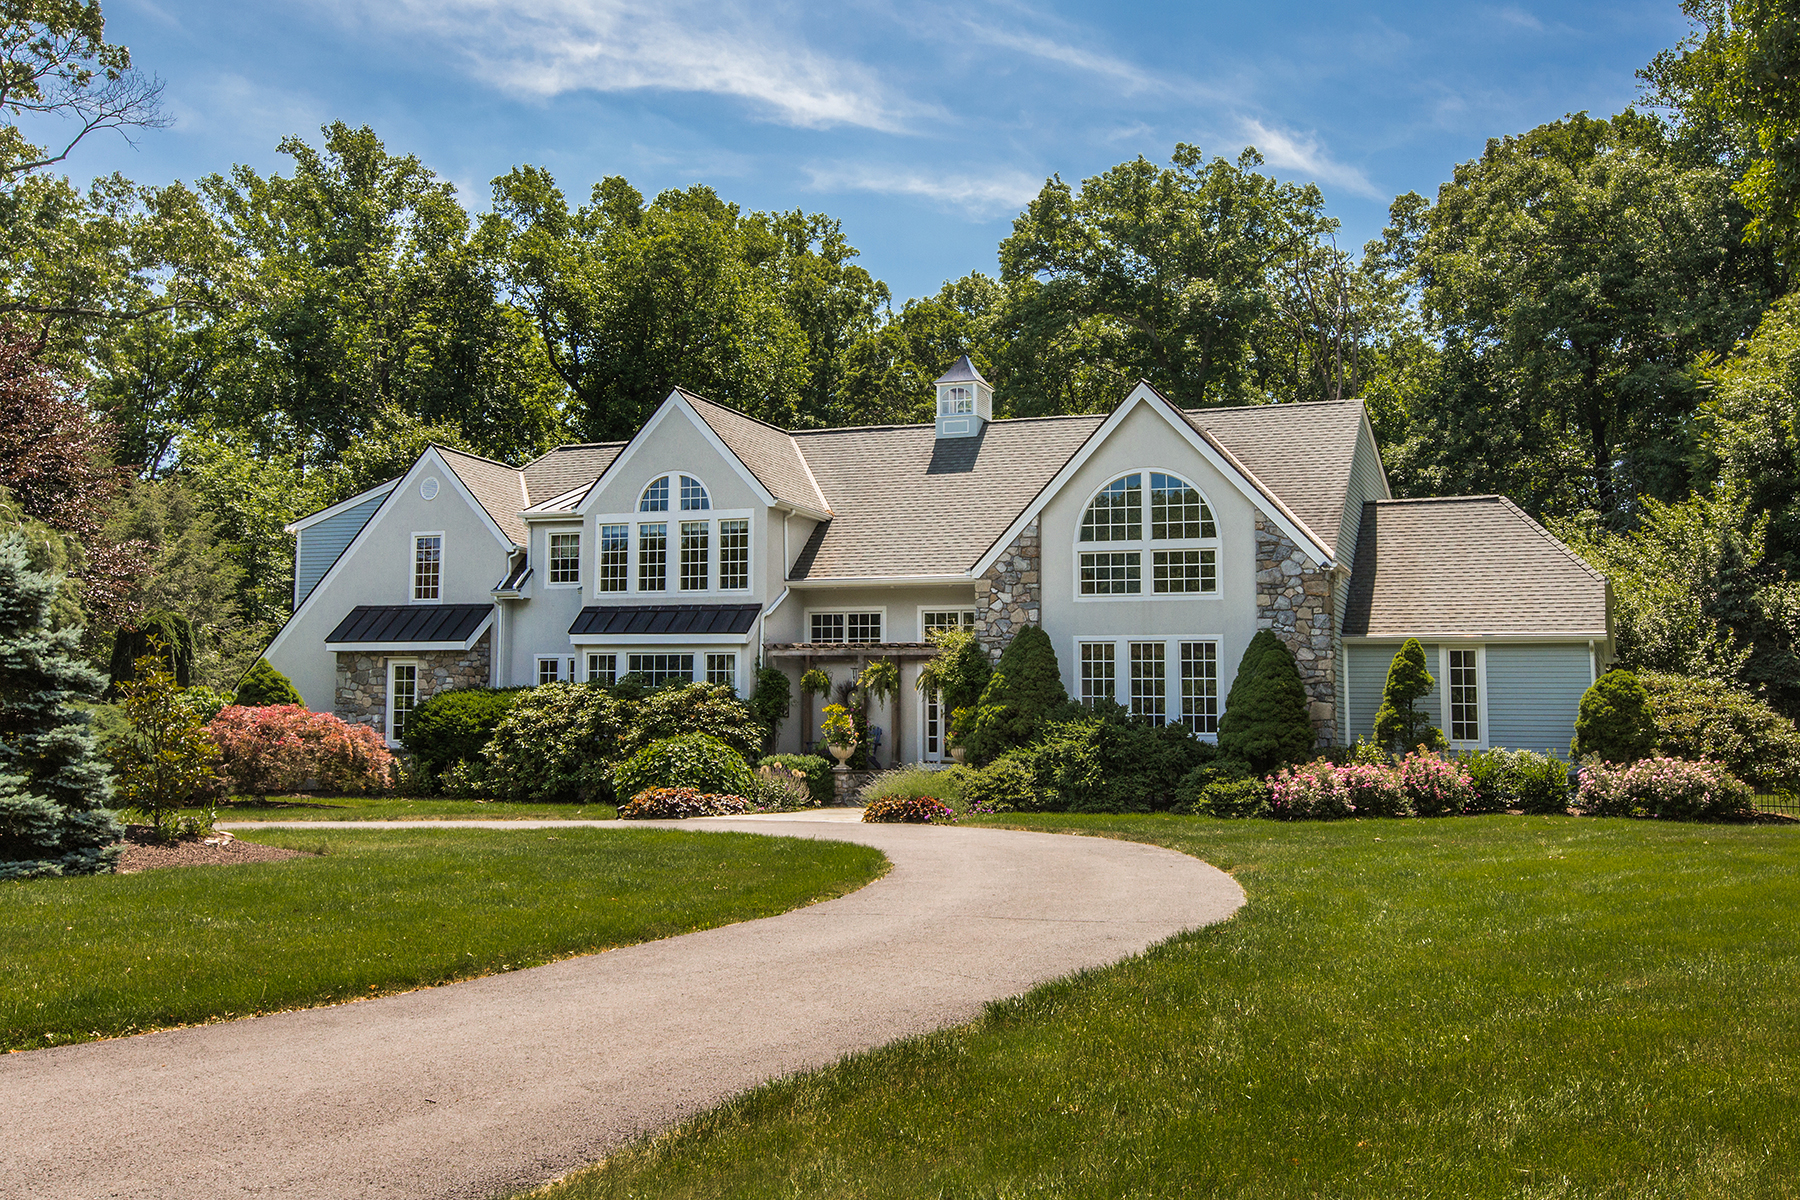 Single Family Home for Sale at New Hope, PA 6025 Stoney Hill Rd New Hope, Pennsylvania, 18938 United States